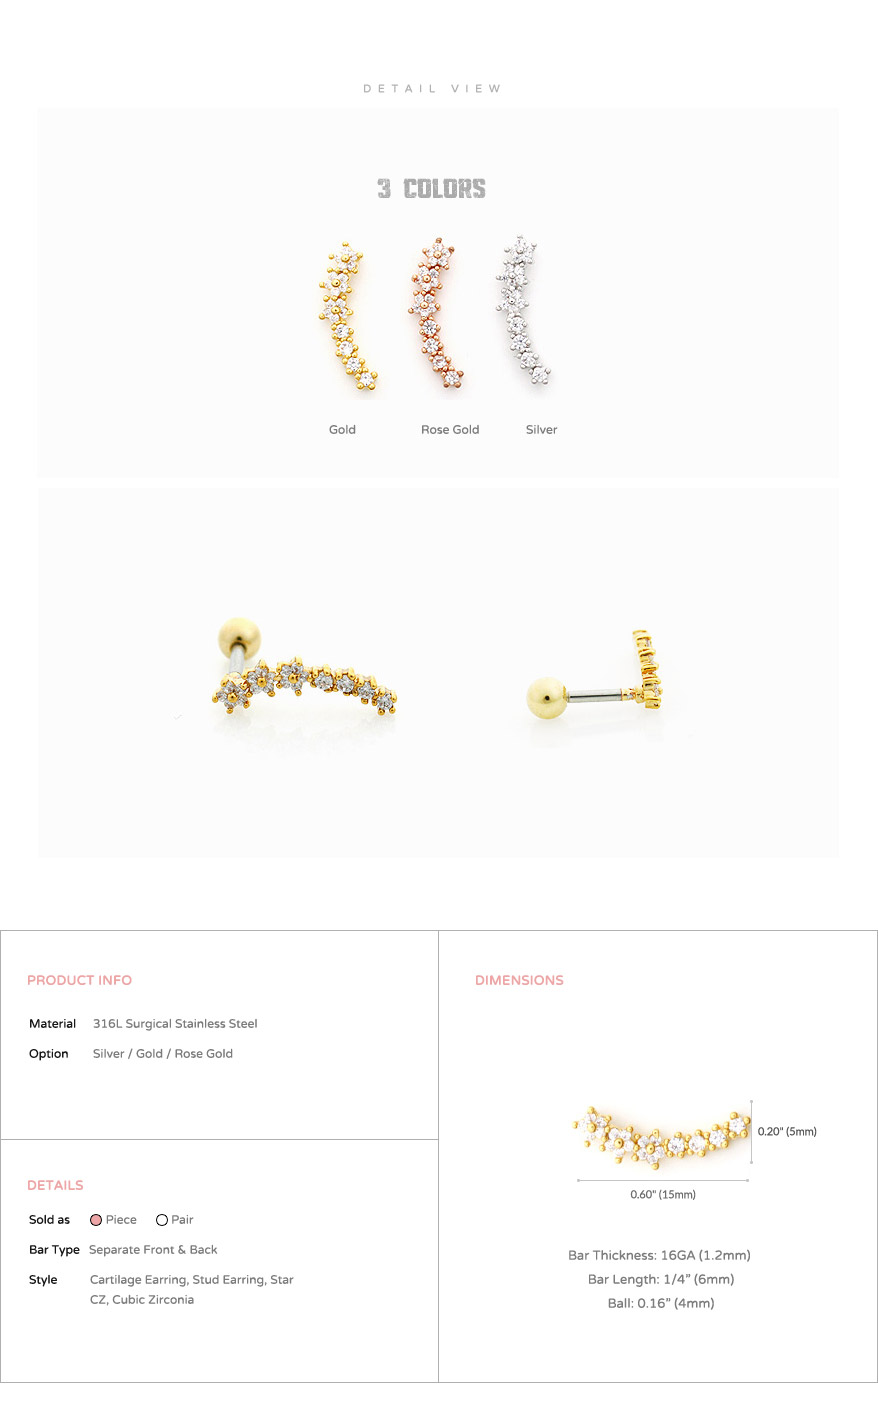 ear_studs_piercing_cartilage_earrings_16g_316l_surgical_stainless_steel_korean_asian_style_jewelry_barbell_rose_gold_helix_star_5